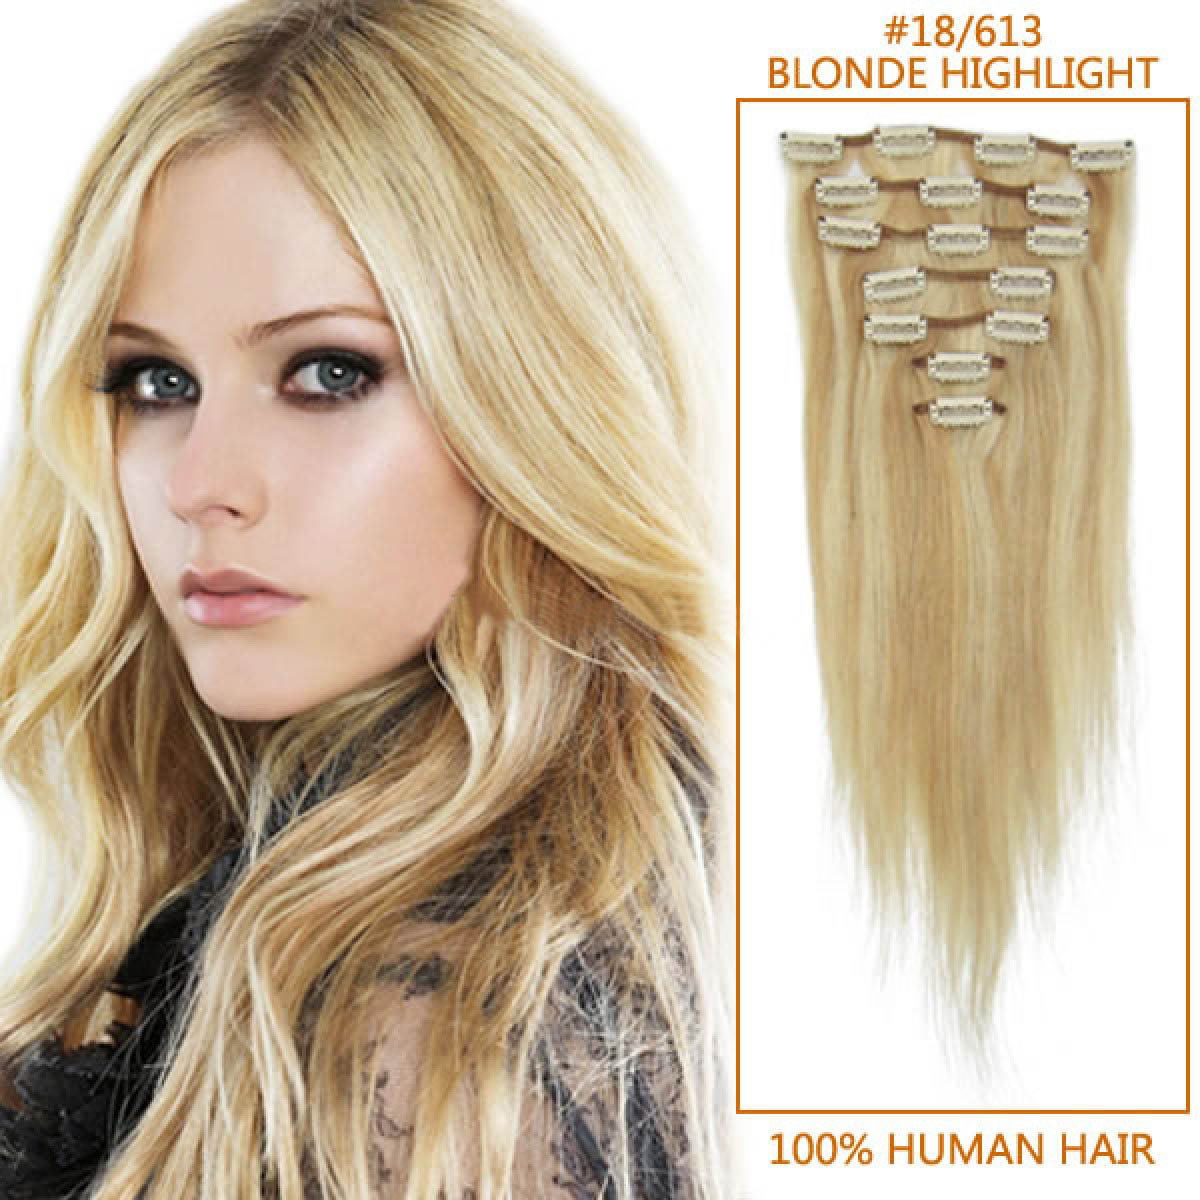 26 Inch 18613 Blonde Highlight Clip In Remy Human Hair Extensions 7pcs